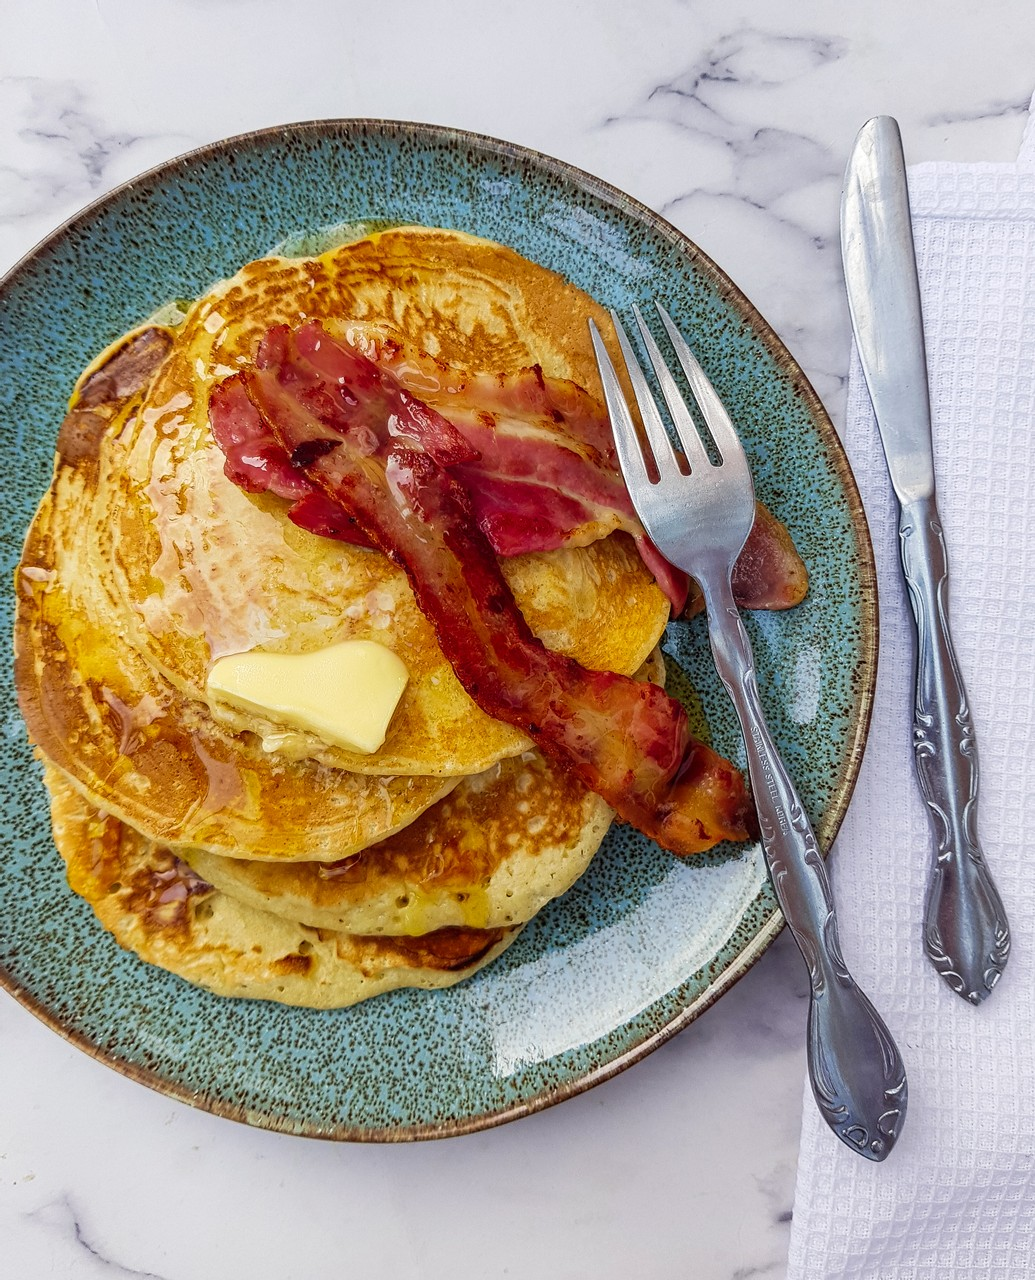 Fluffy American style pancake with bacon and maple syrup